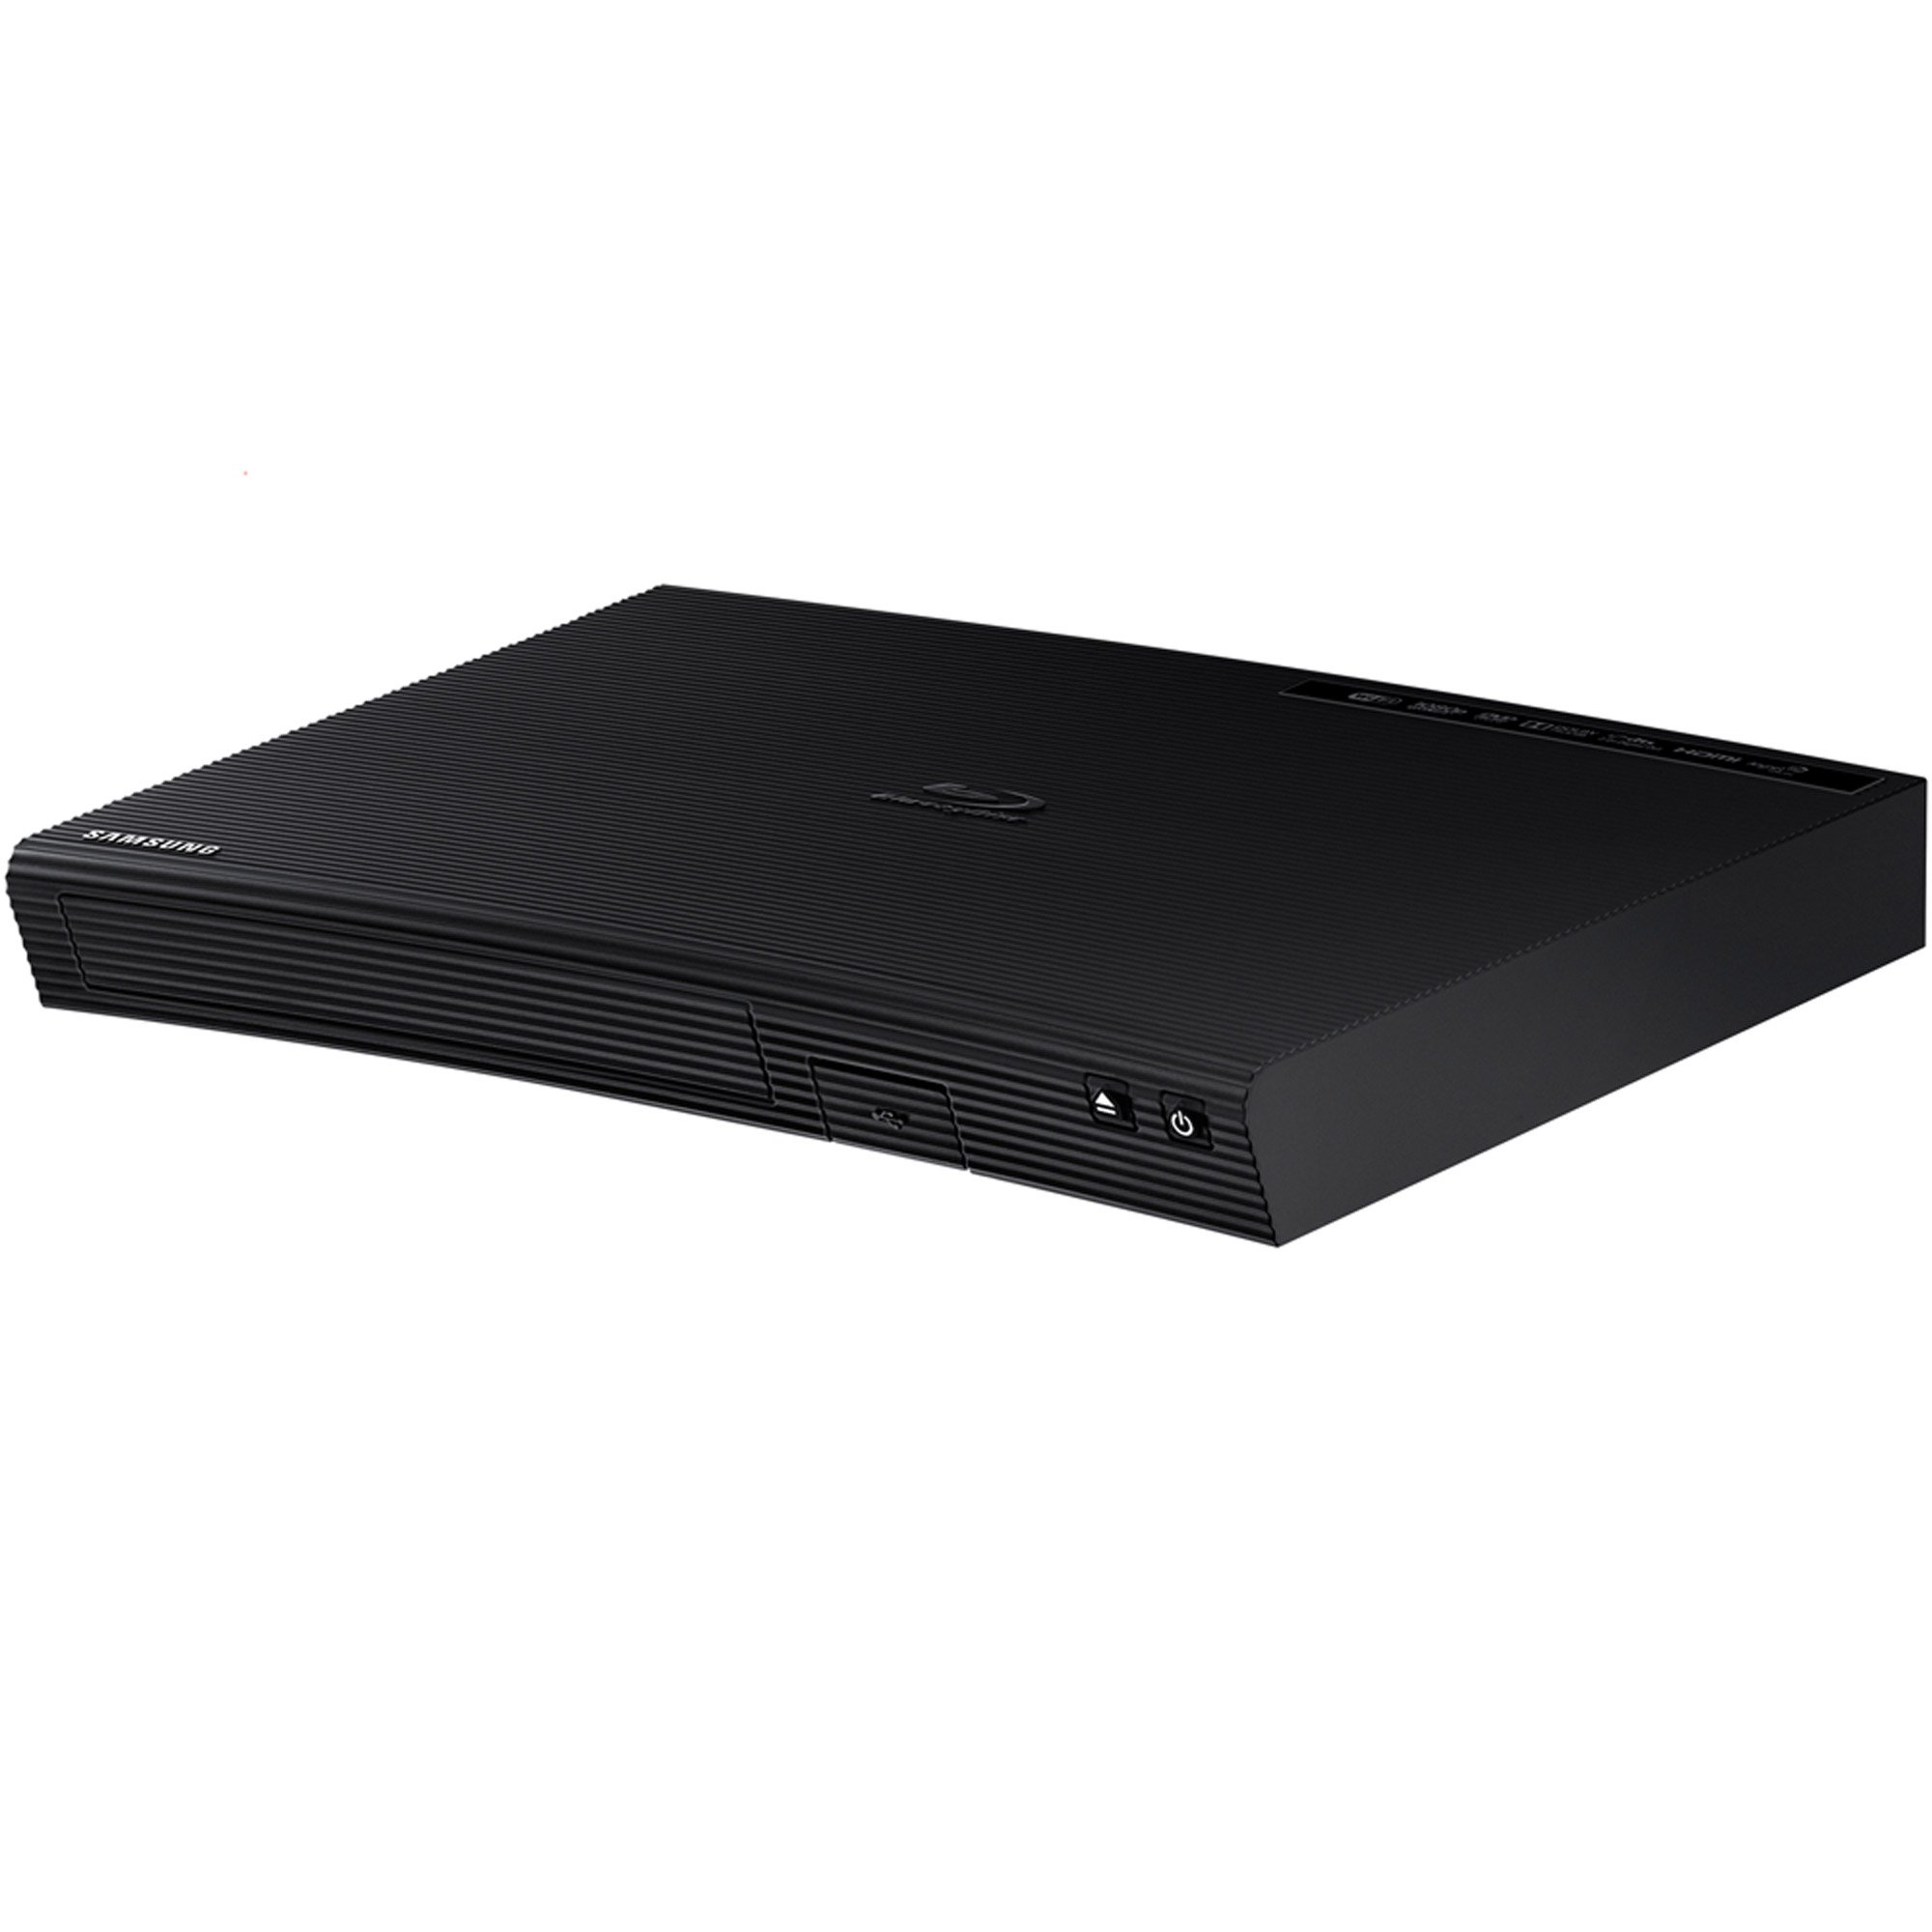 Samsung BD-JM57/ZA Blu-ray Disc Player with WiFi by Samsung